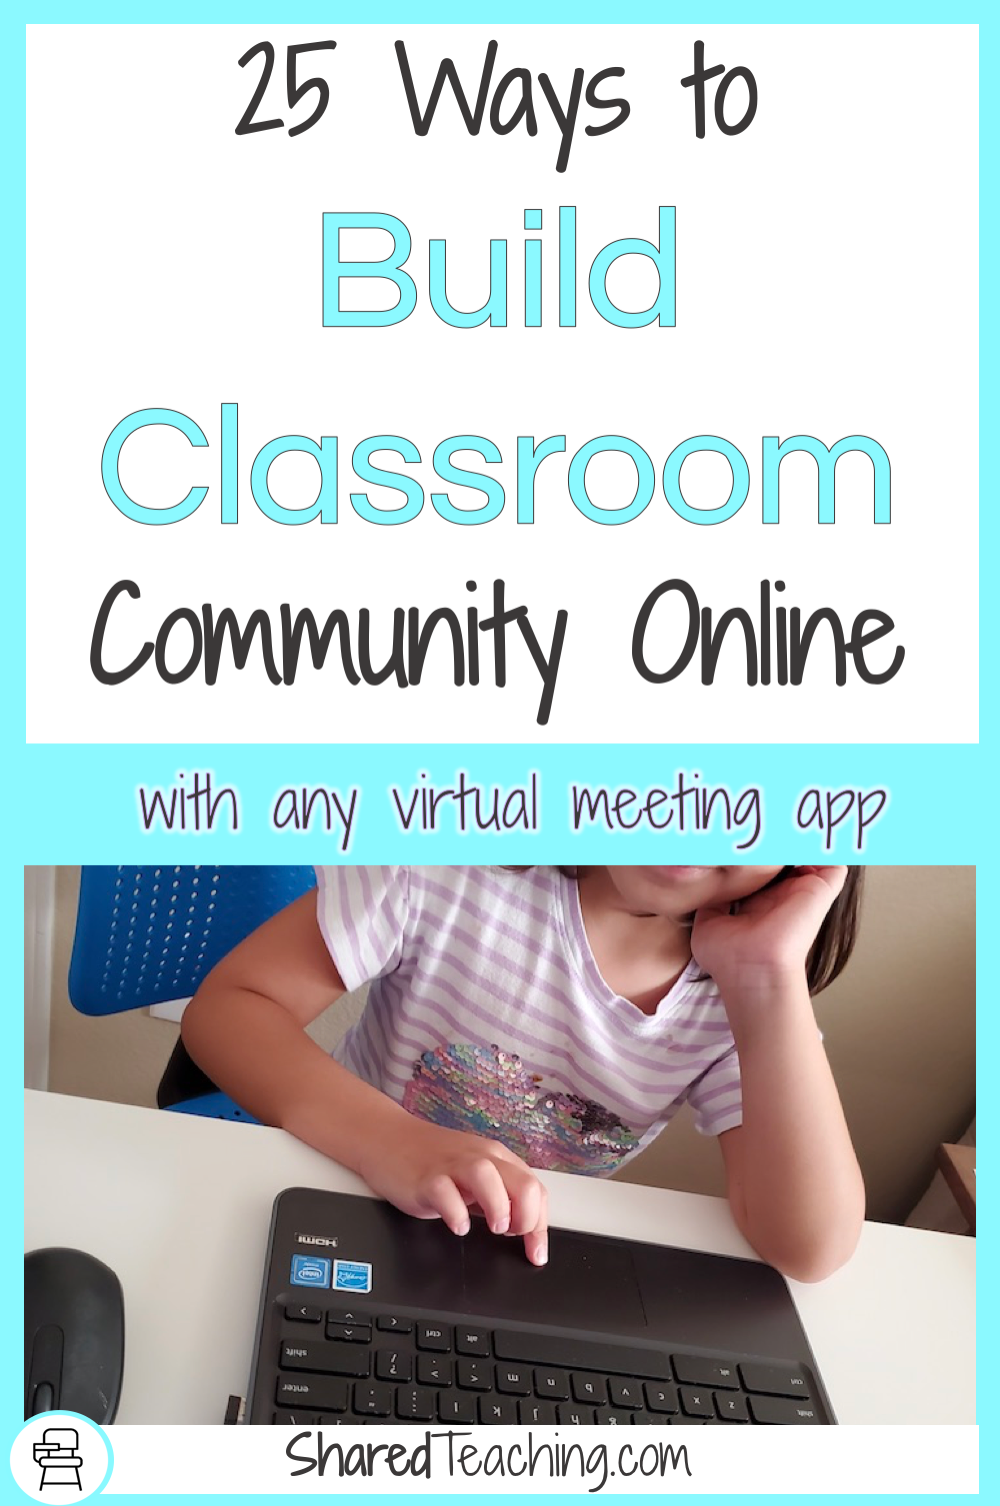 Get 25 ways to build an online classroom community using these meeting ideas. Click to get the free printable.